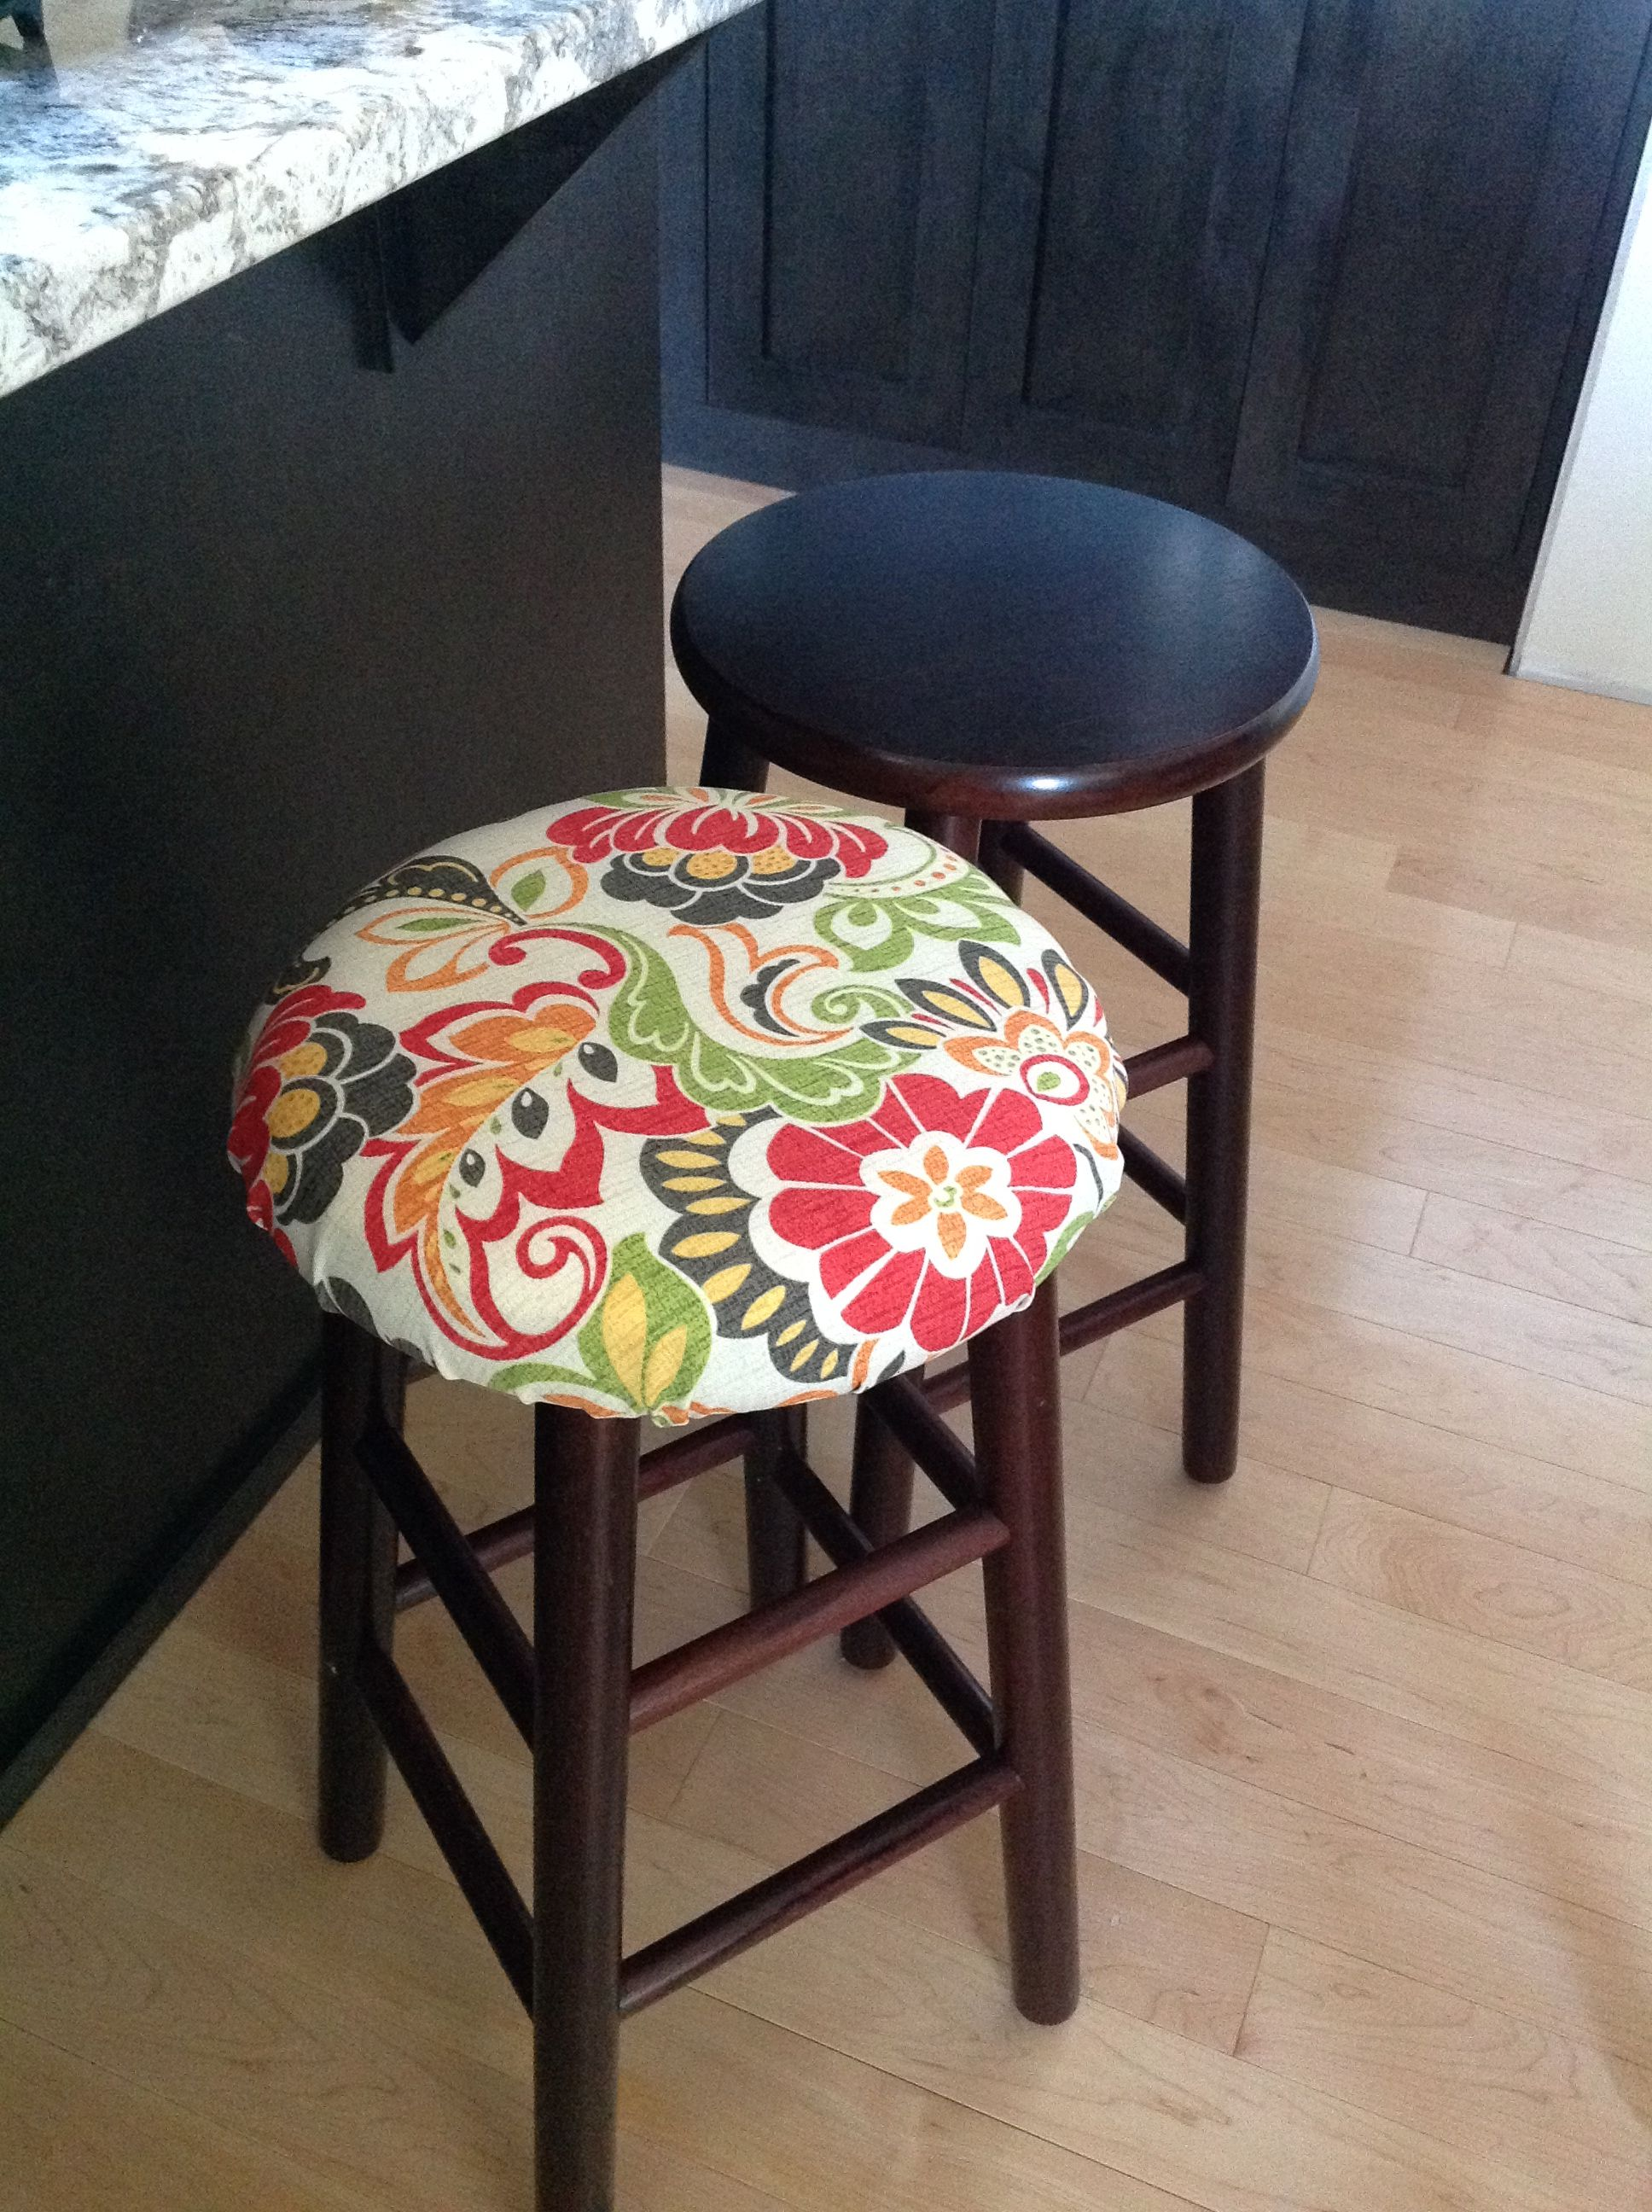 Diy No Sew Bar Stool Cover Just Added Fabric To My Simple Bold Face Bar Stools Used 12 Outdoor Fabric Bar Stool Covers Painted Bar Stools Kitchen Bar Stools